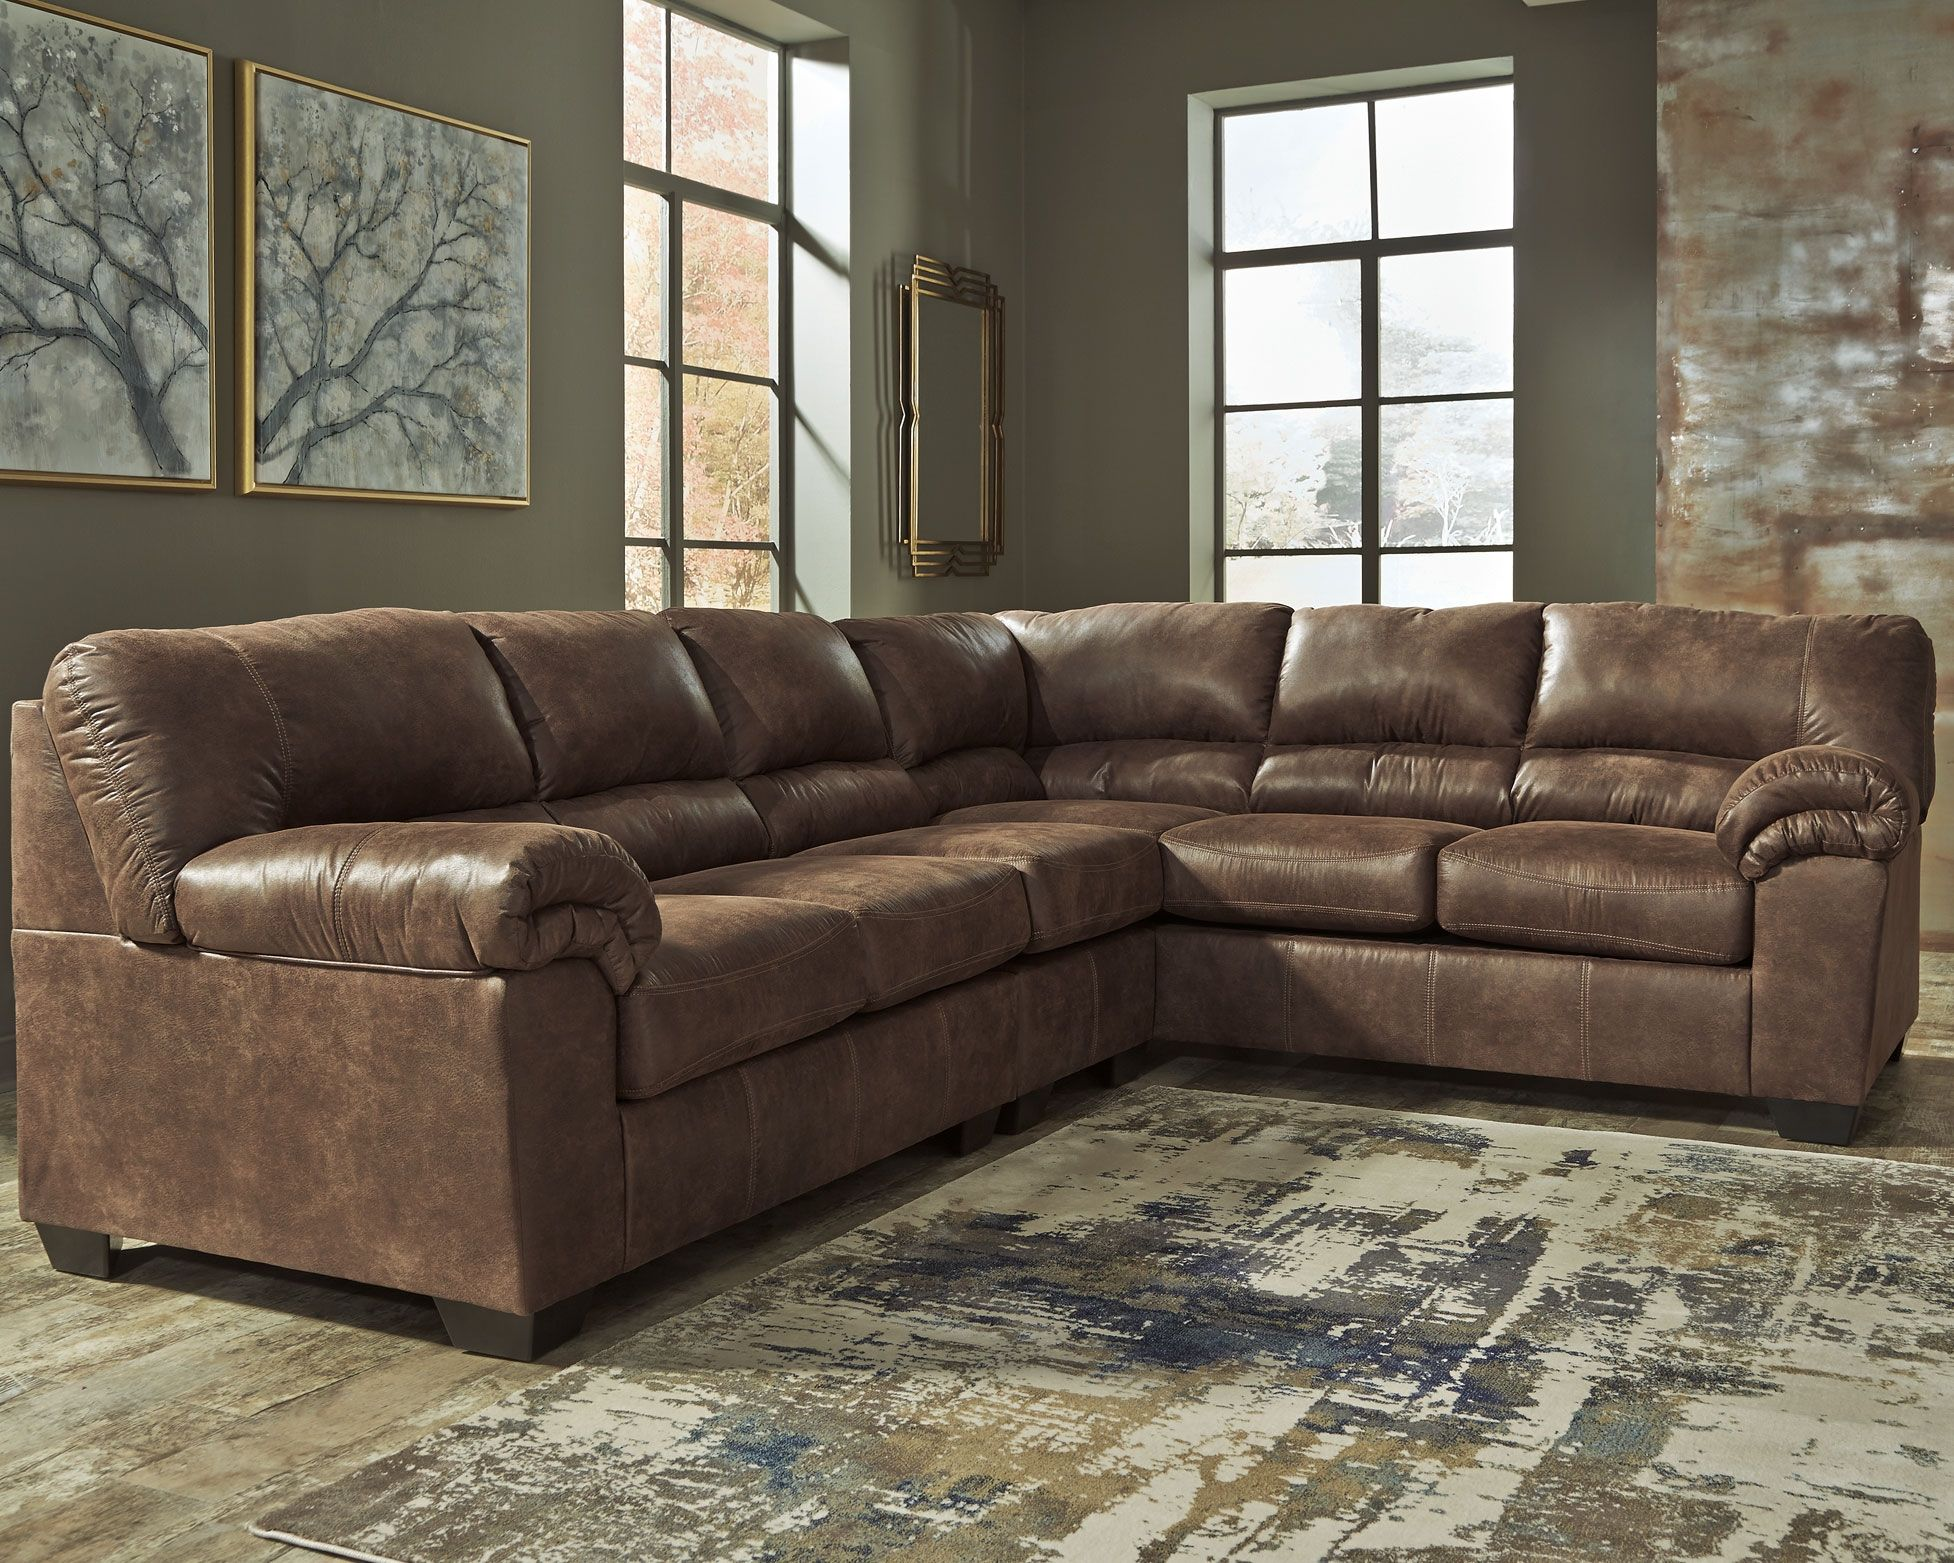 Bladen 3 Piece Sectional Coffee In 2020 Ashley Sectional Sectional Sofa Furniture